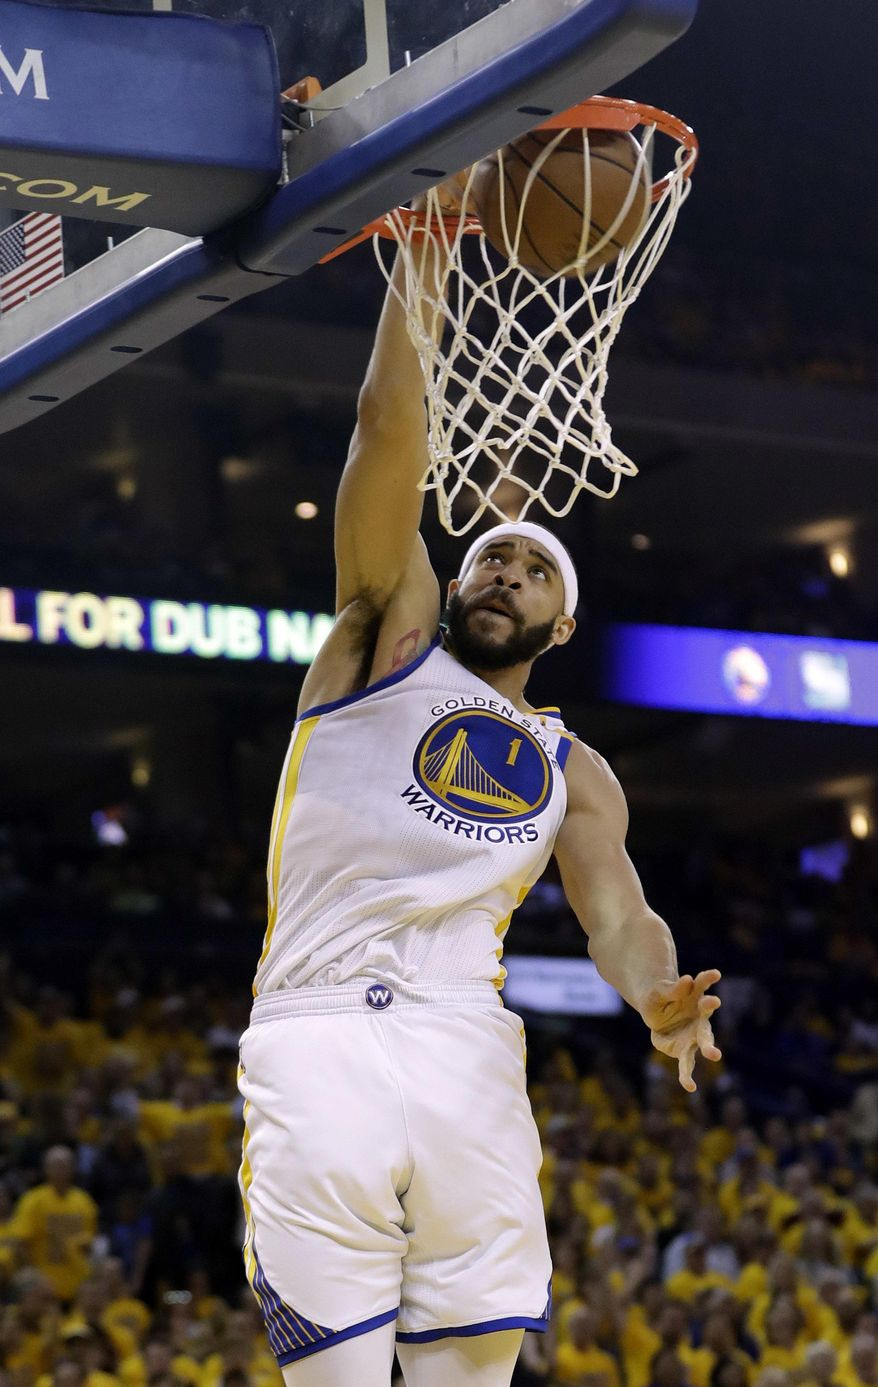 Golden State Warriors' JaVale McGee (1) dunks against the Utah Jazz during the first half in Game 2 of an NBA basketball second-round playoff series, Thursday, May 4, 2017, in Oakland, Calif. (AP Photo/Marcio Jose Sanchez)